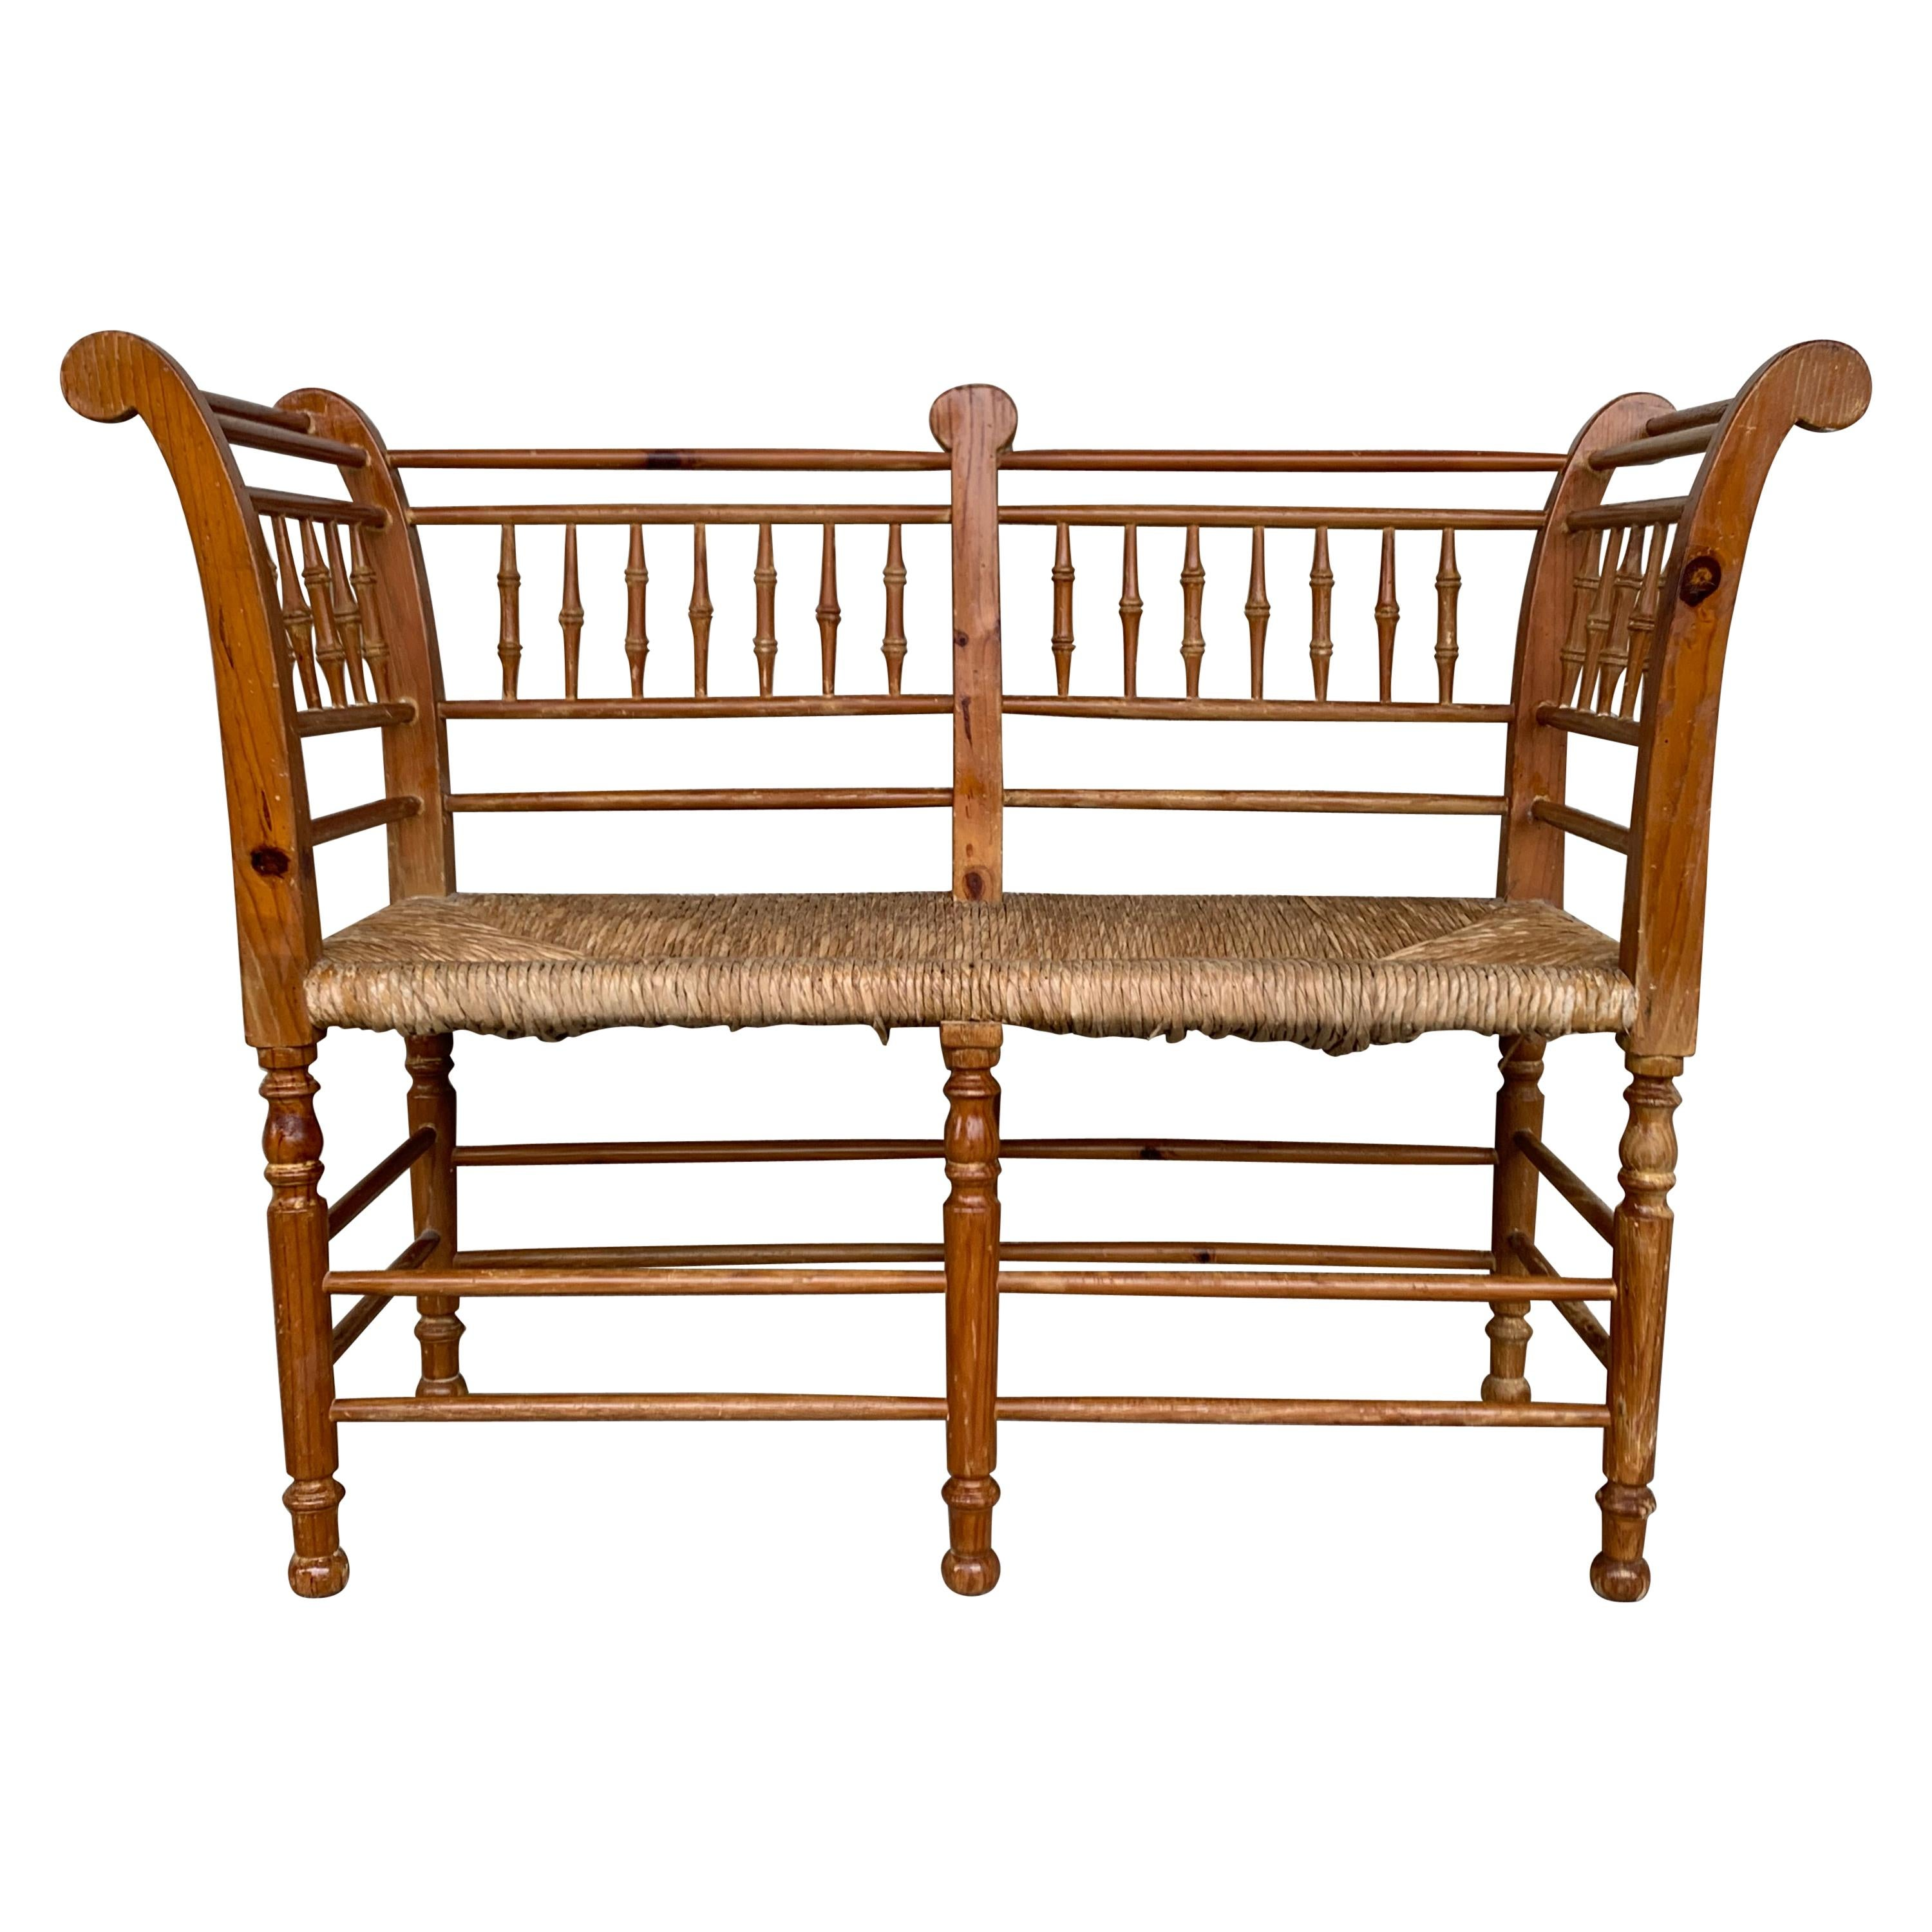 20th Century Catalan Bench in Antique Pine with Caned Seat